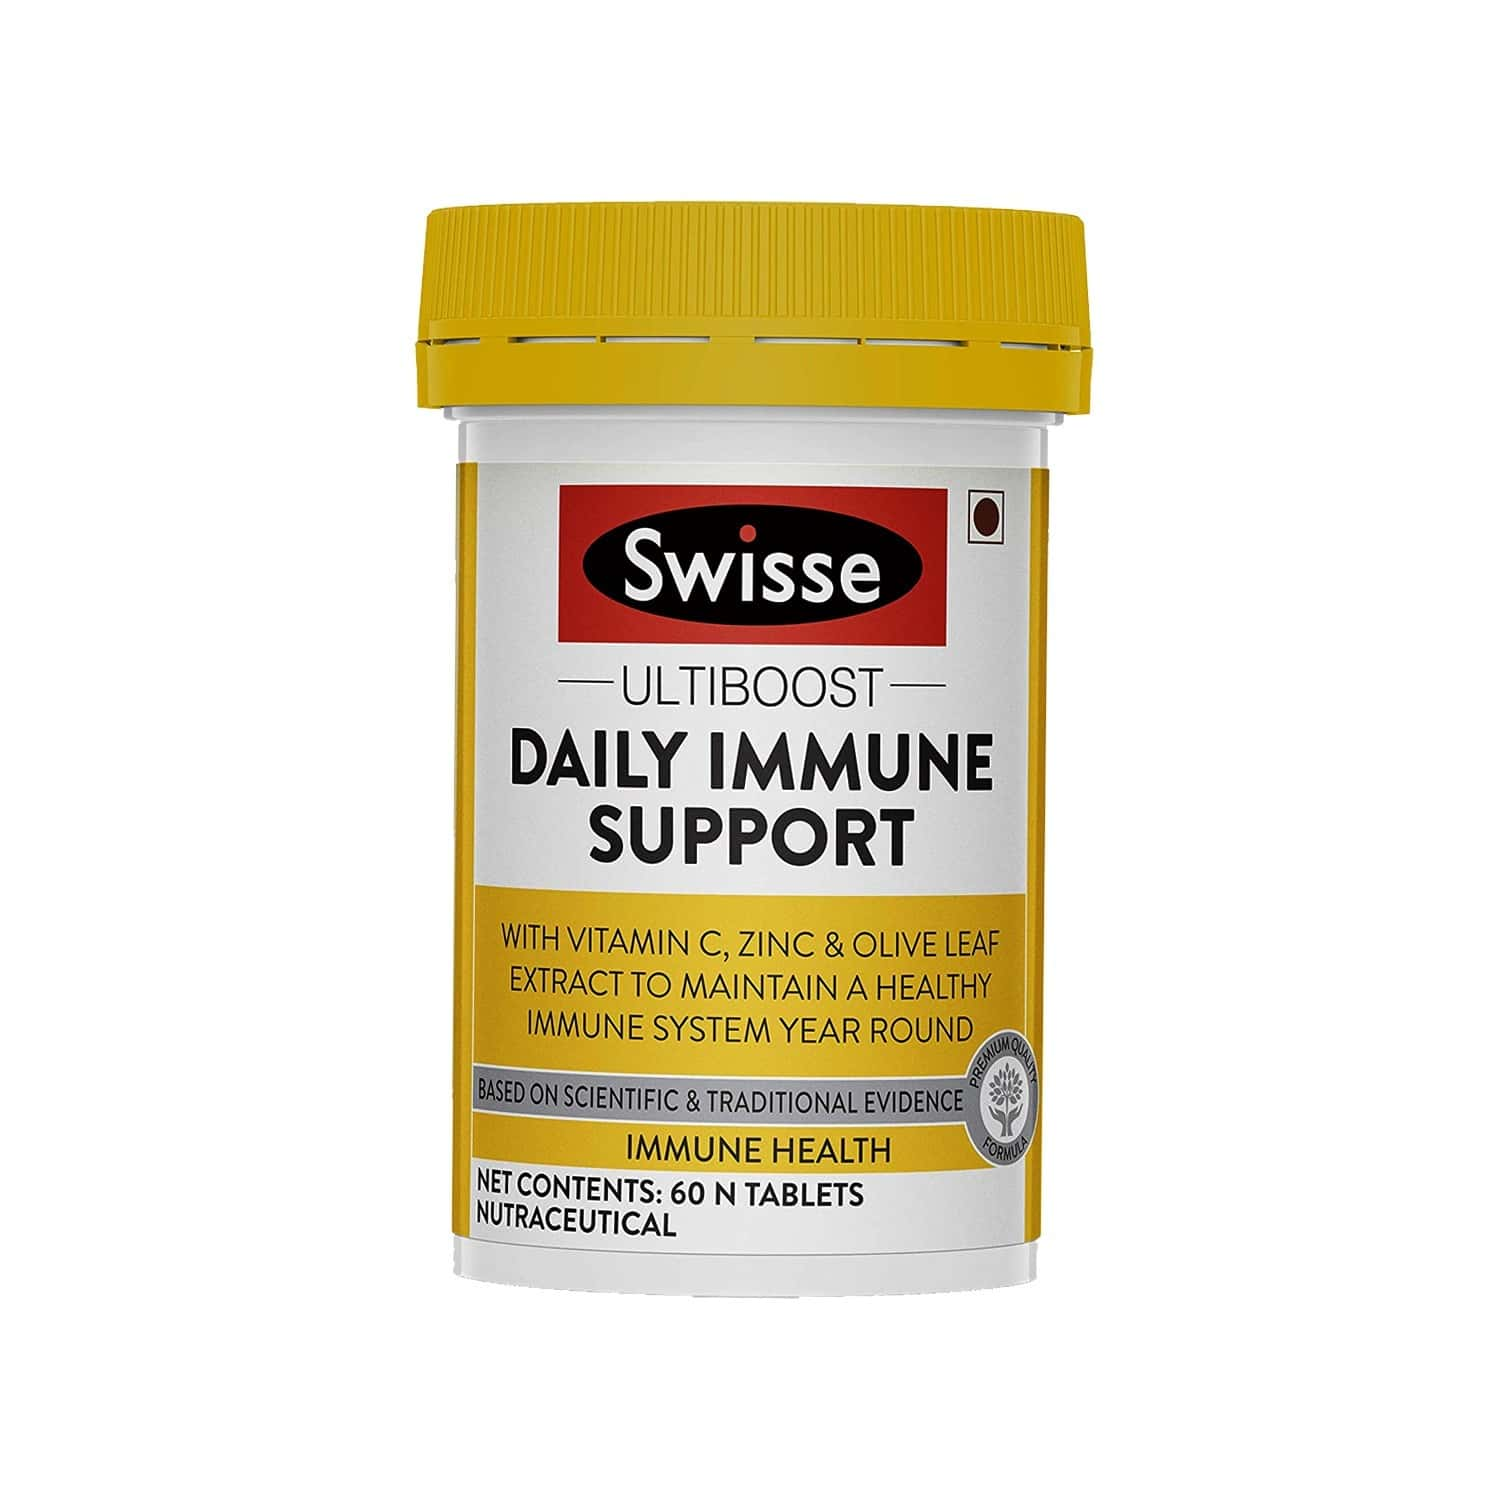 Swisse Ultiboost Daily Immune Support With Vitamin C Zinc And Olive Leaf Extract To Maintain A Healthy Immune System - 60 Tablets